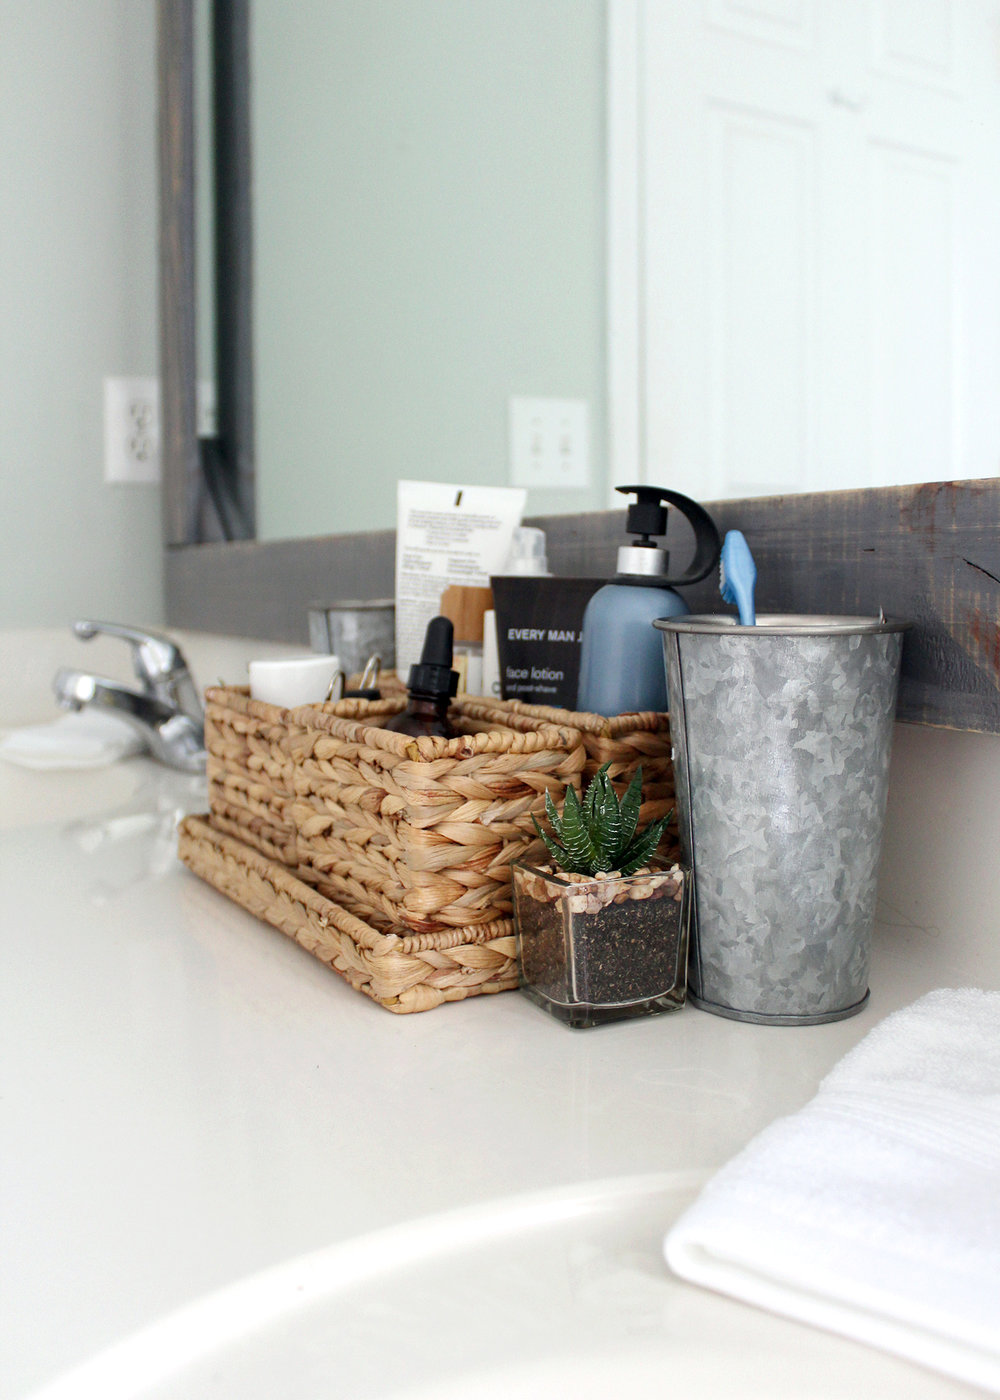 A Master Bathroom Refresh With Tuesday Morning #masterbathroom #budgetdecor #Ad #TuesdayMorningFinds